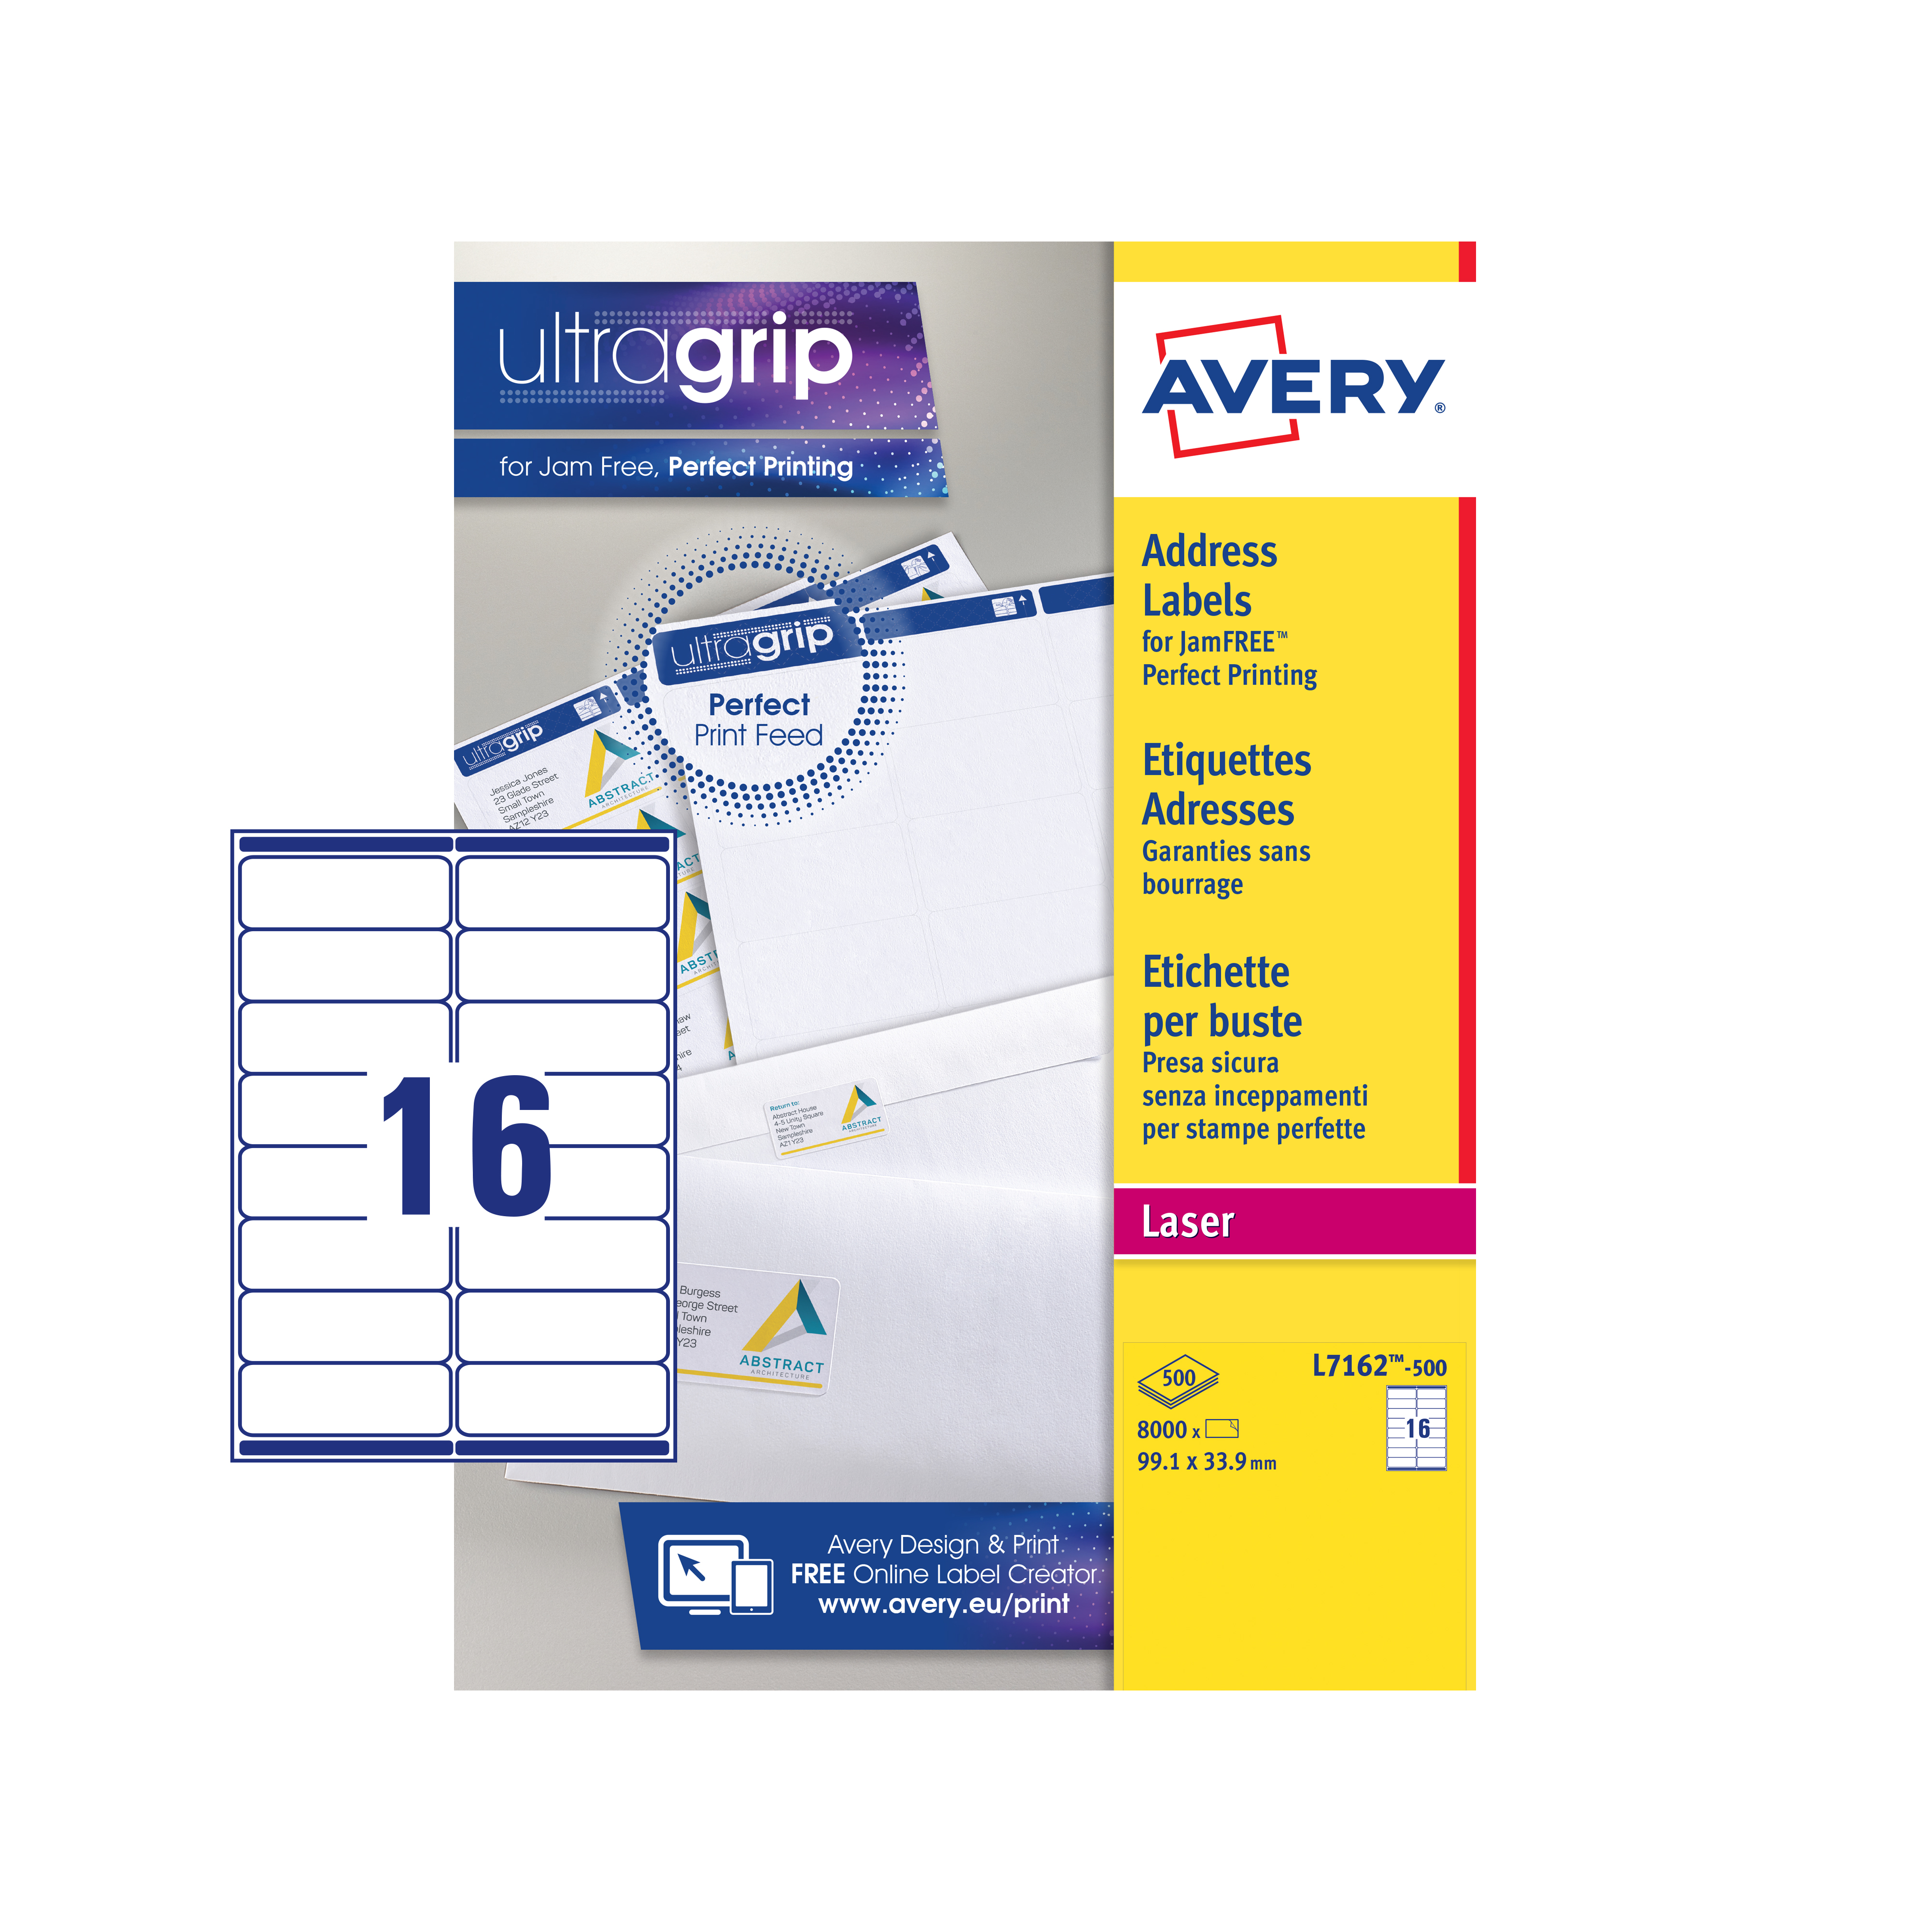 Avery Addressing Labels Laser Jam-free 16 per Sheet 99.1x33.9mm White Ref L7162-500 8000 Labels